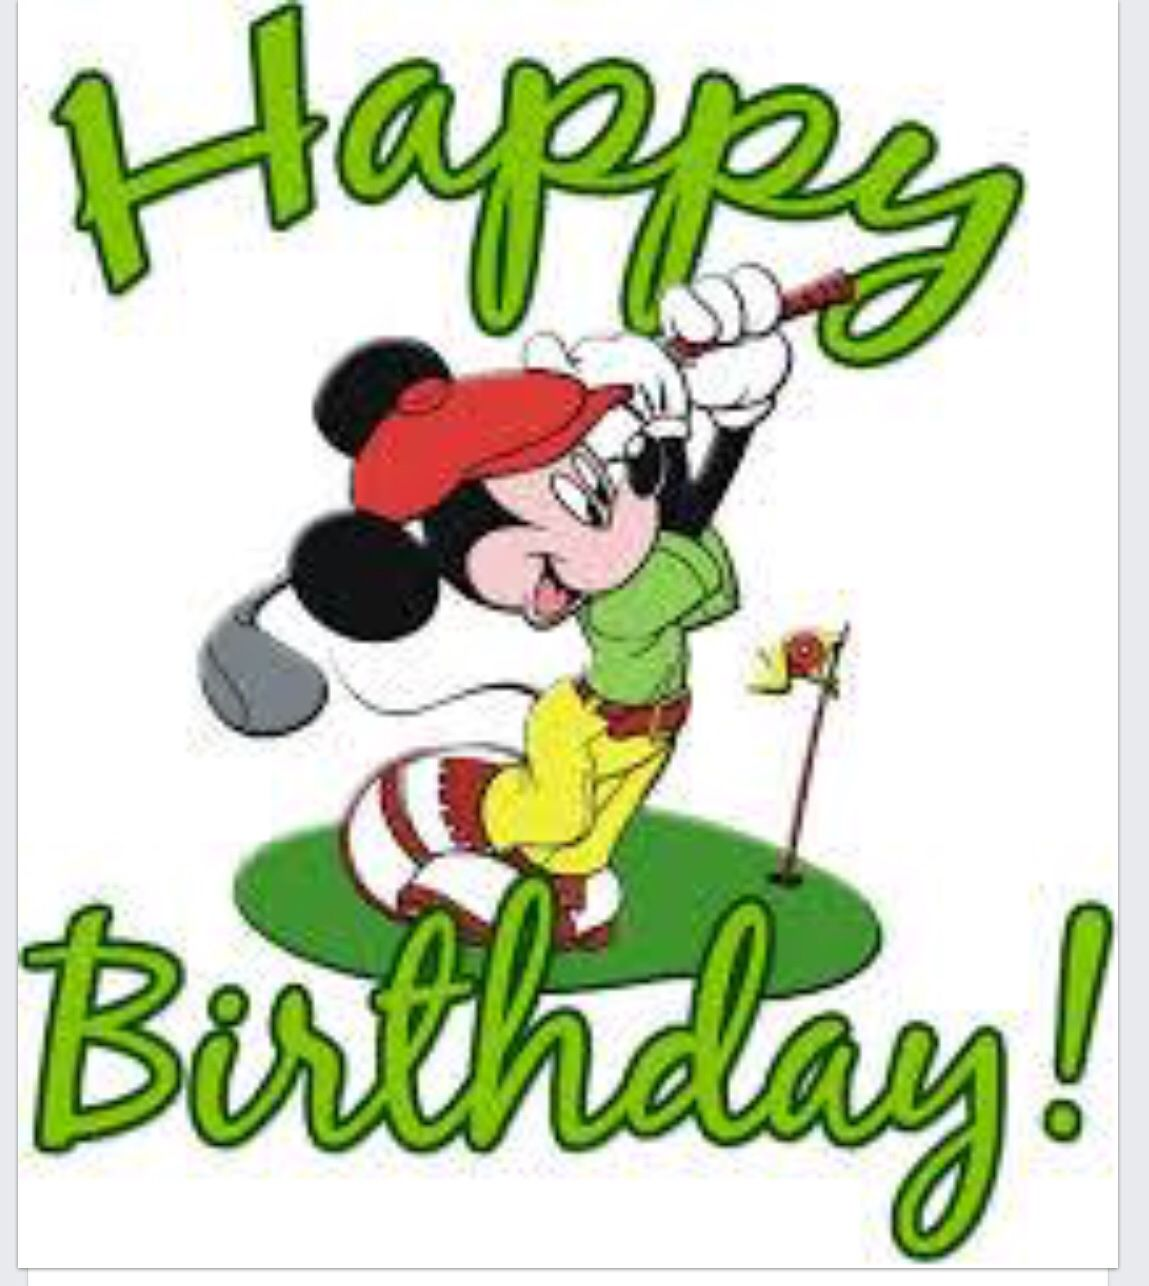 Pin By Grammie Newman On Birthday Pinterest Birthdays And Mickey Mouse Wishing Happy Birthday